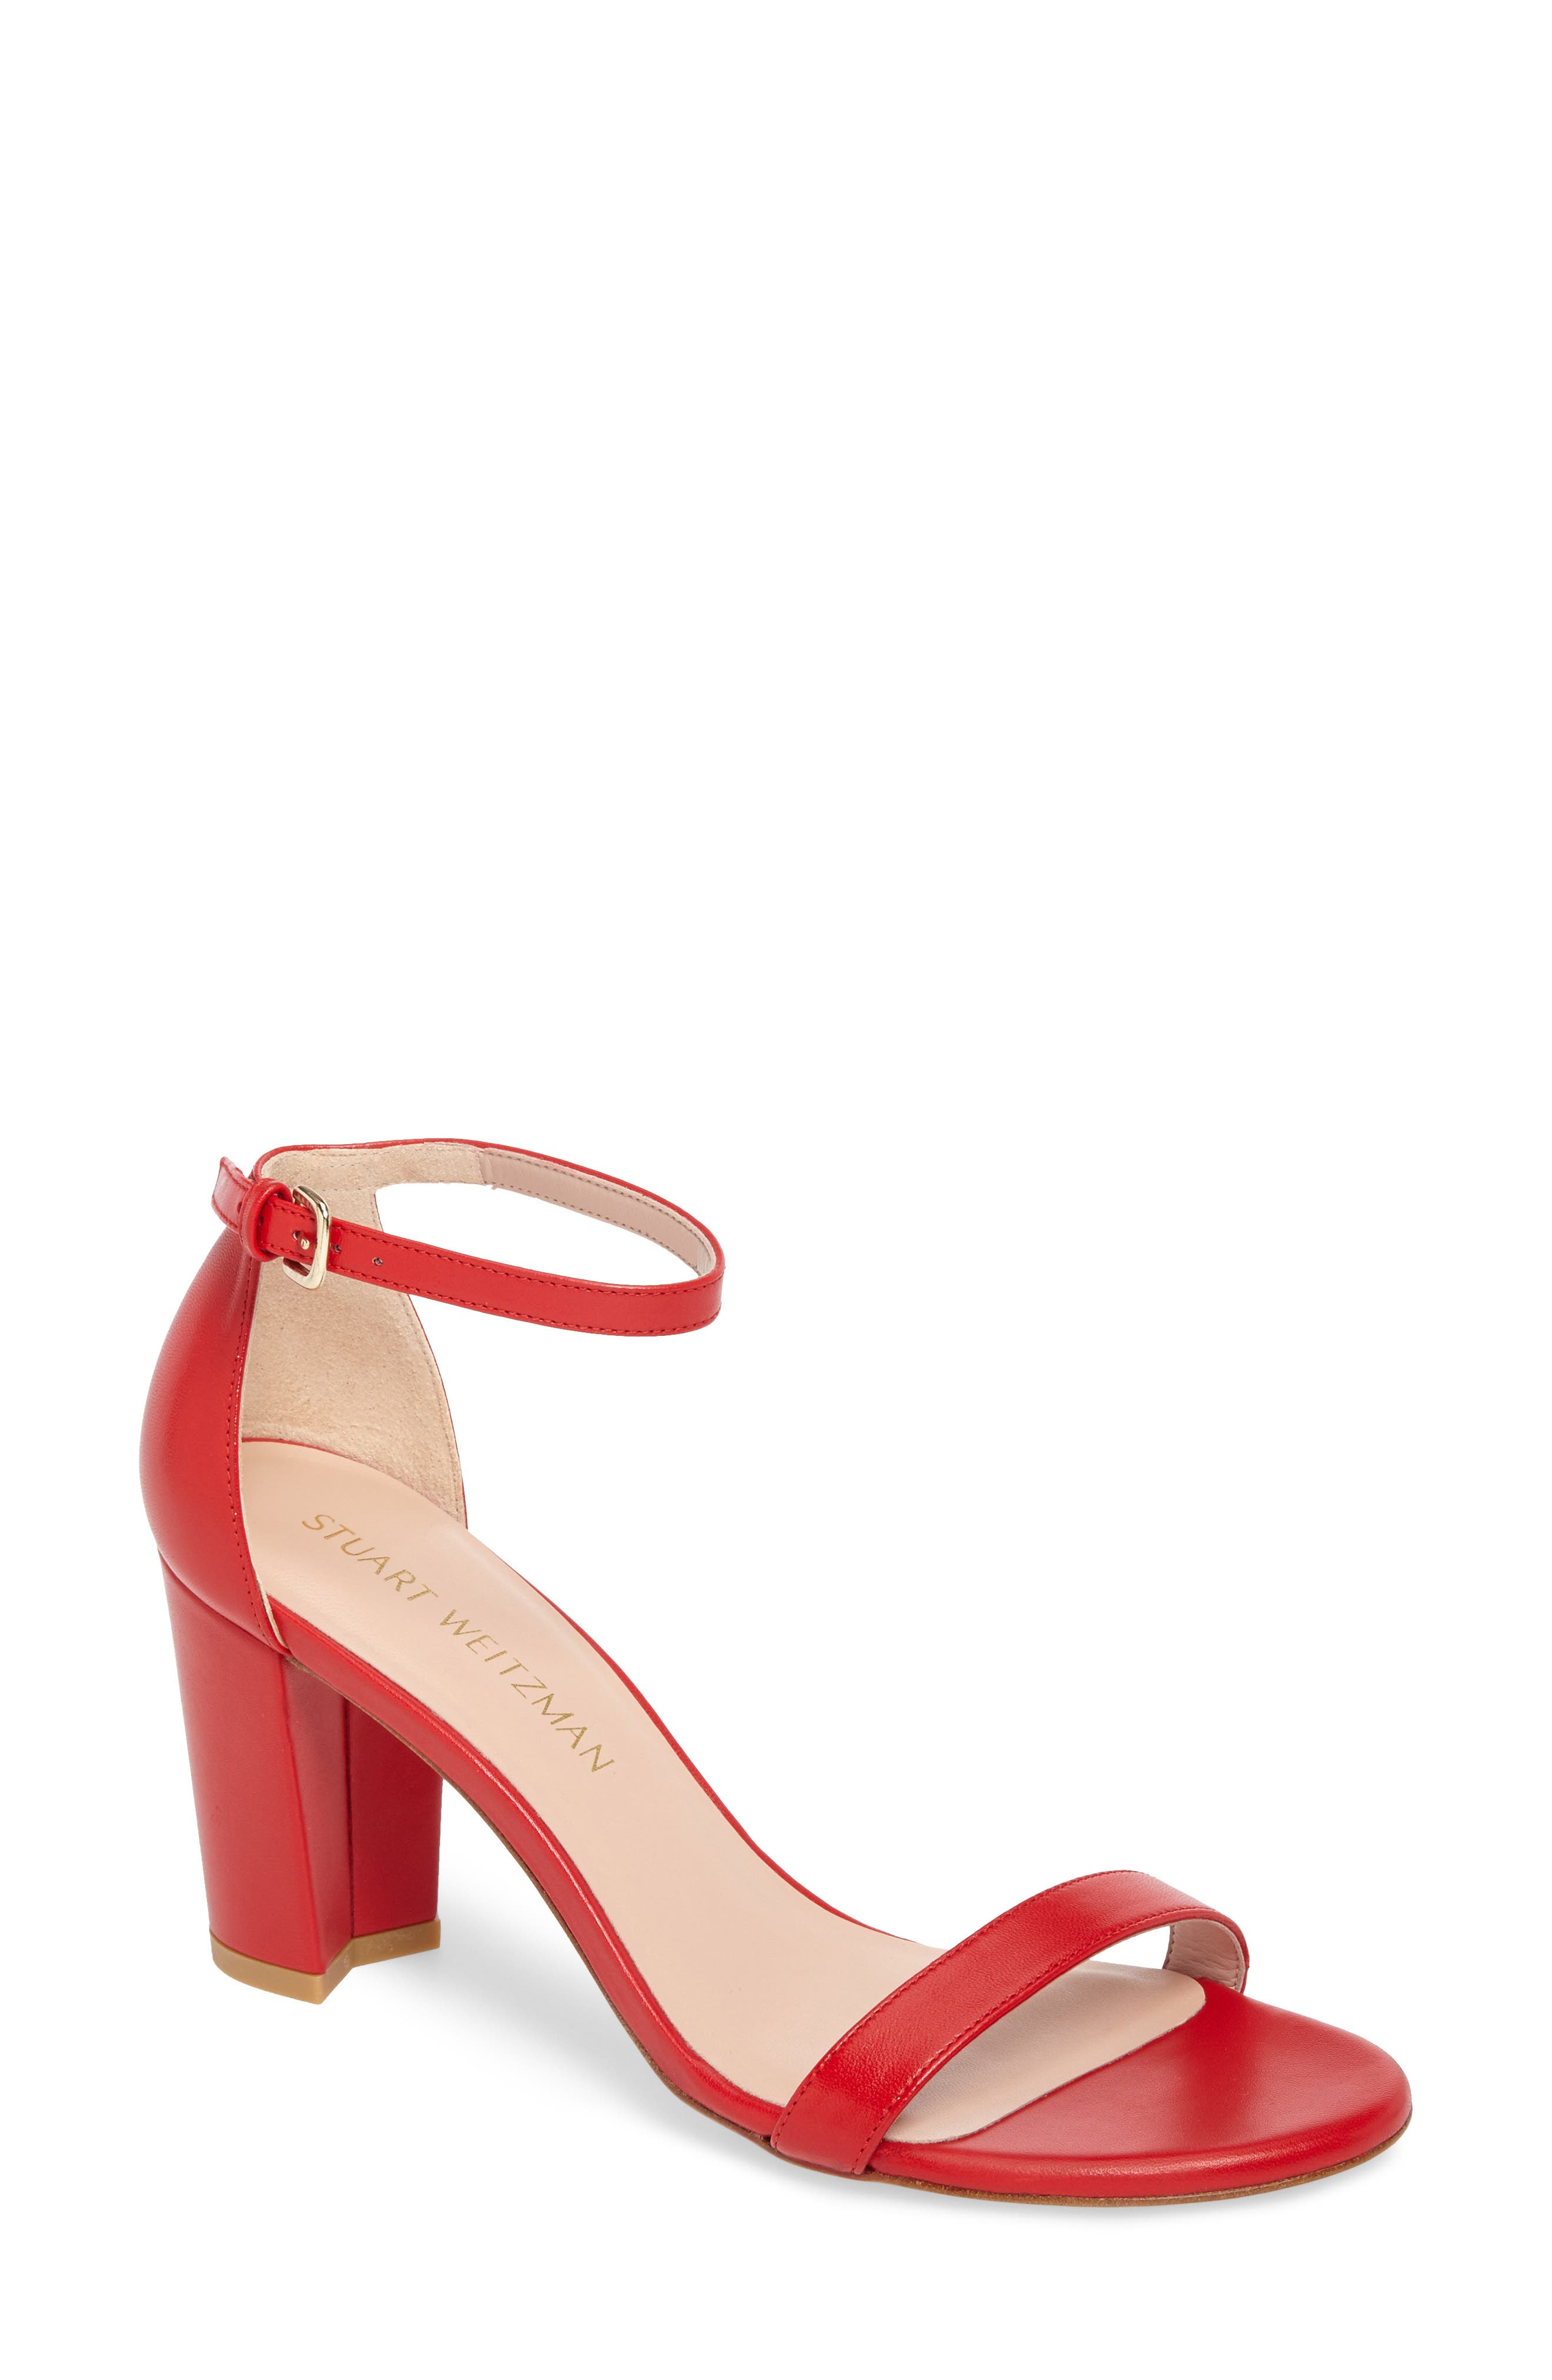 NearlyNude Ankle Strap Sandal,                             Main thumbnail 7, color,